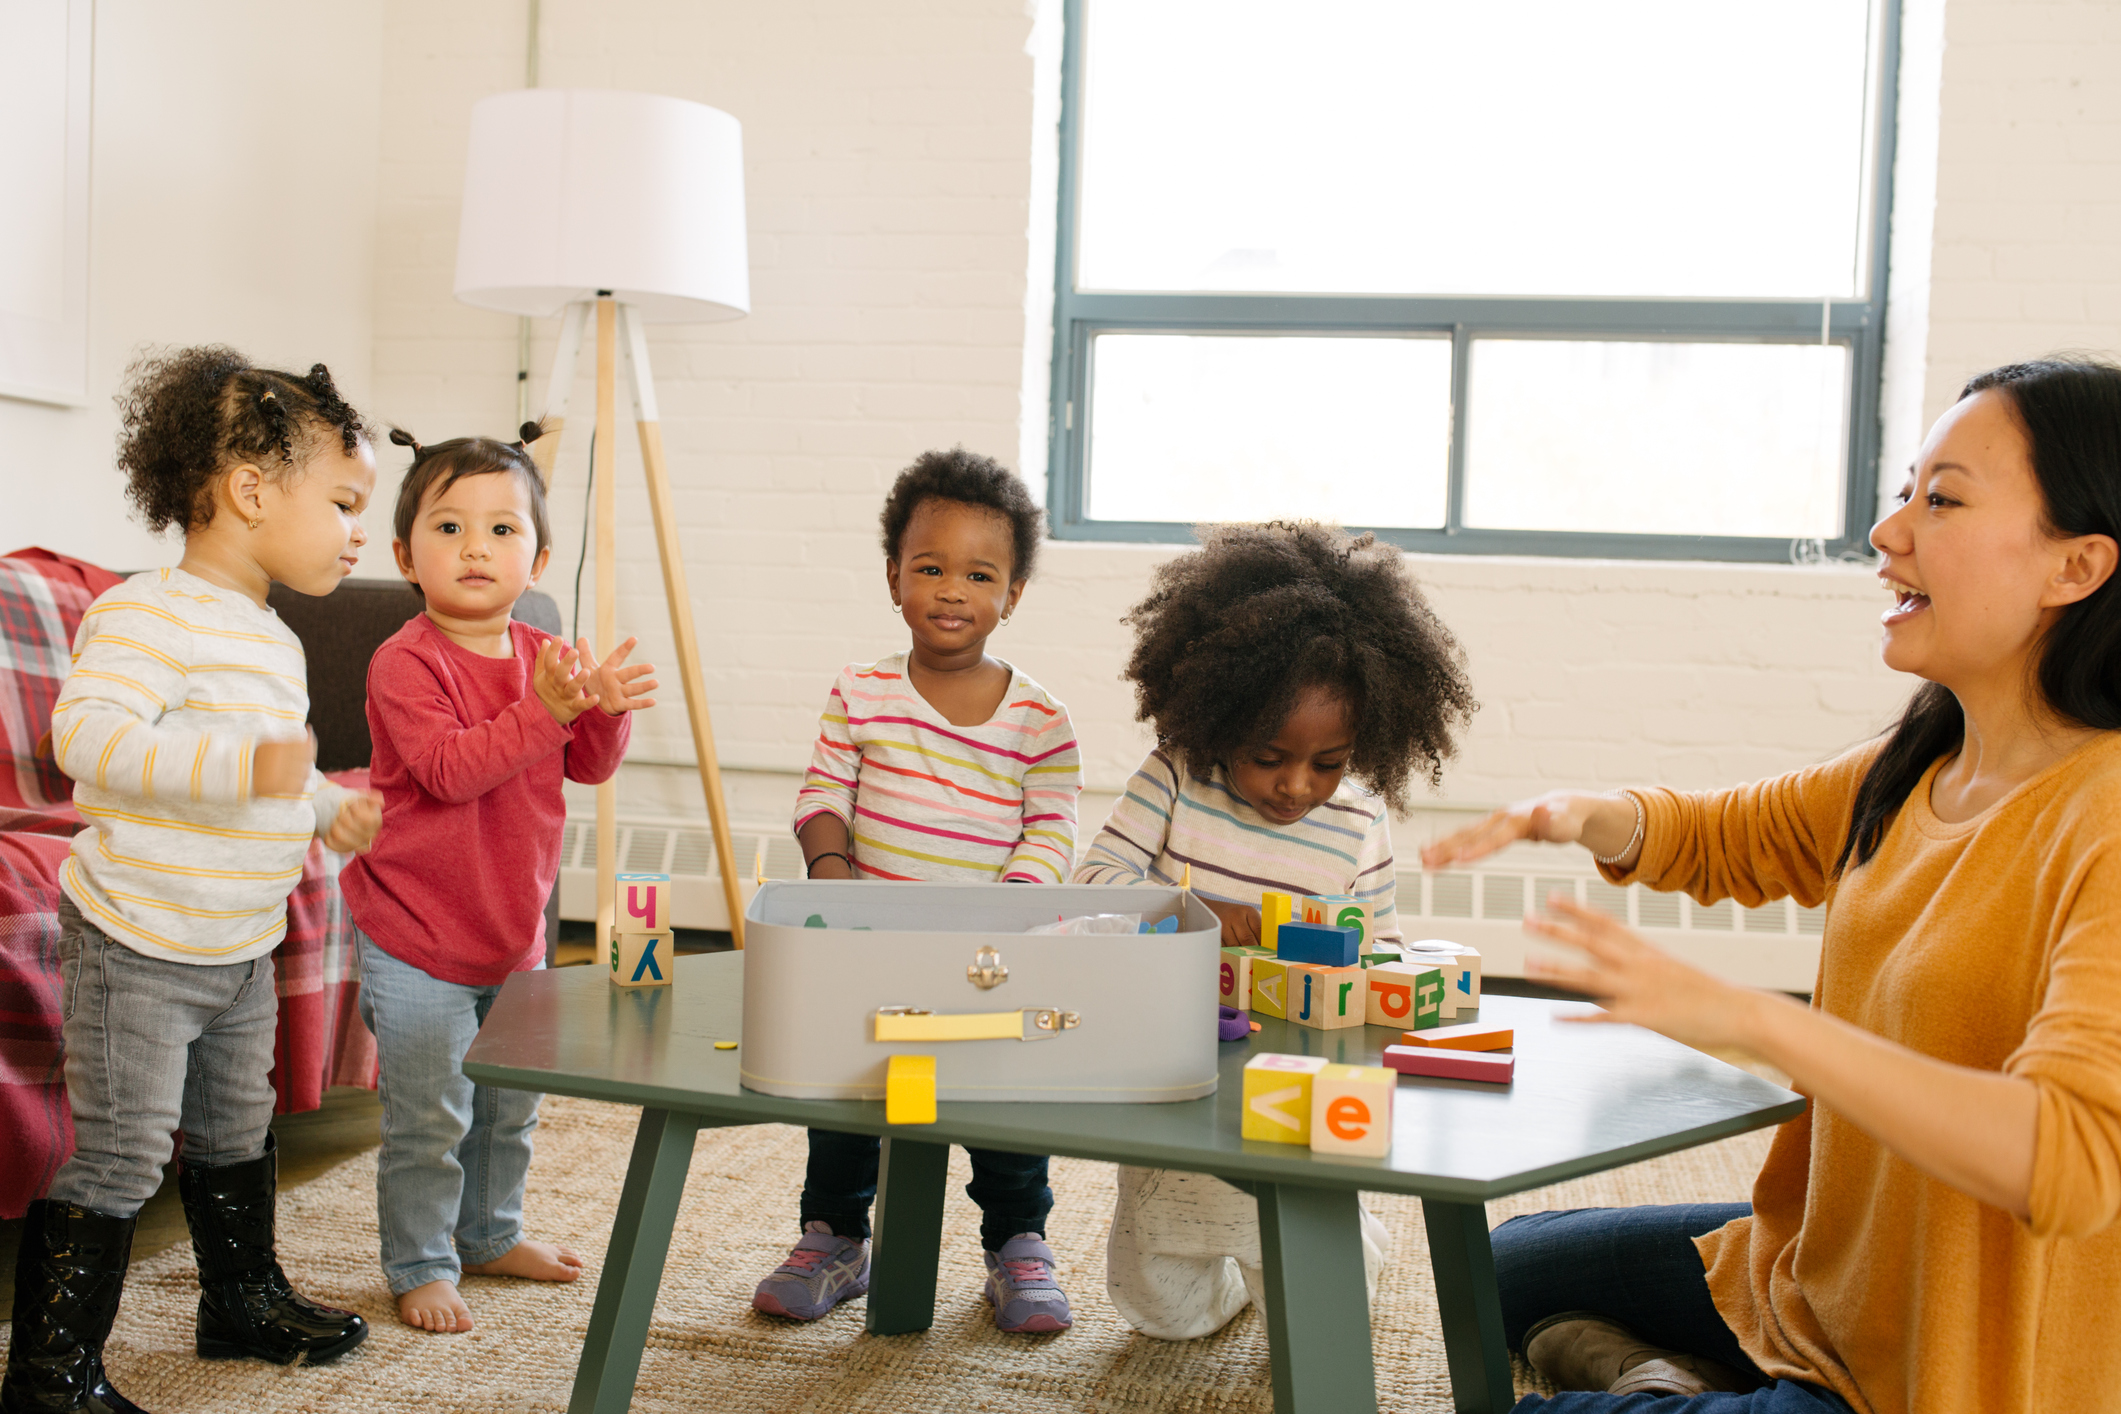 Three Rules to Implement Before Your Next Playdate